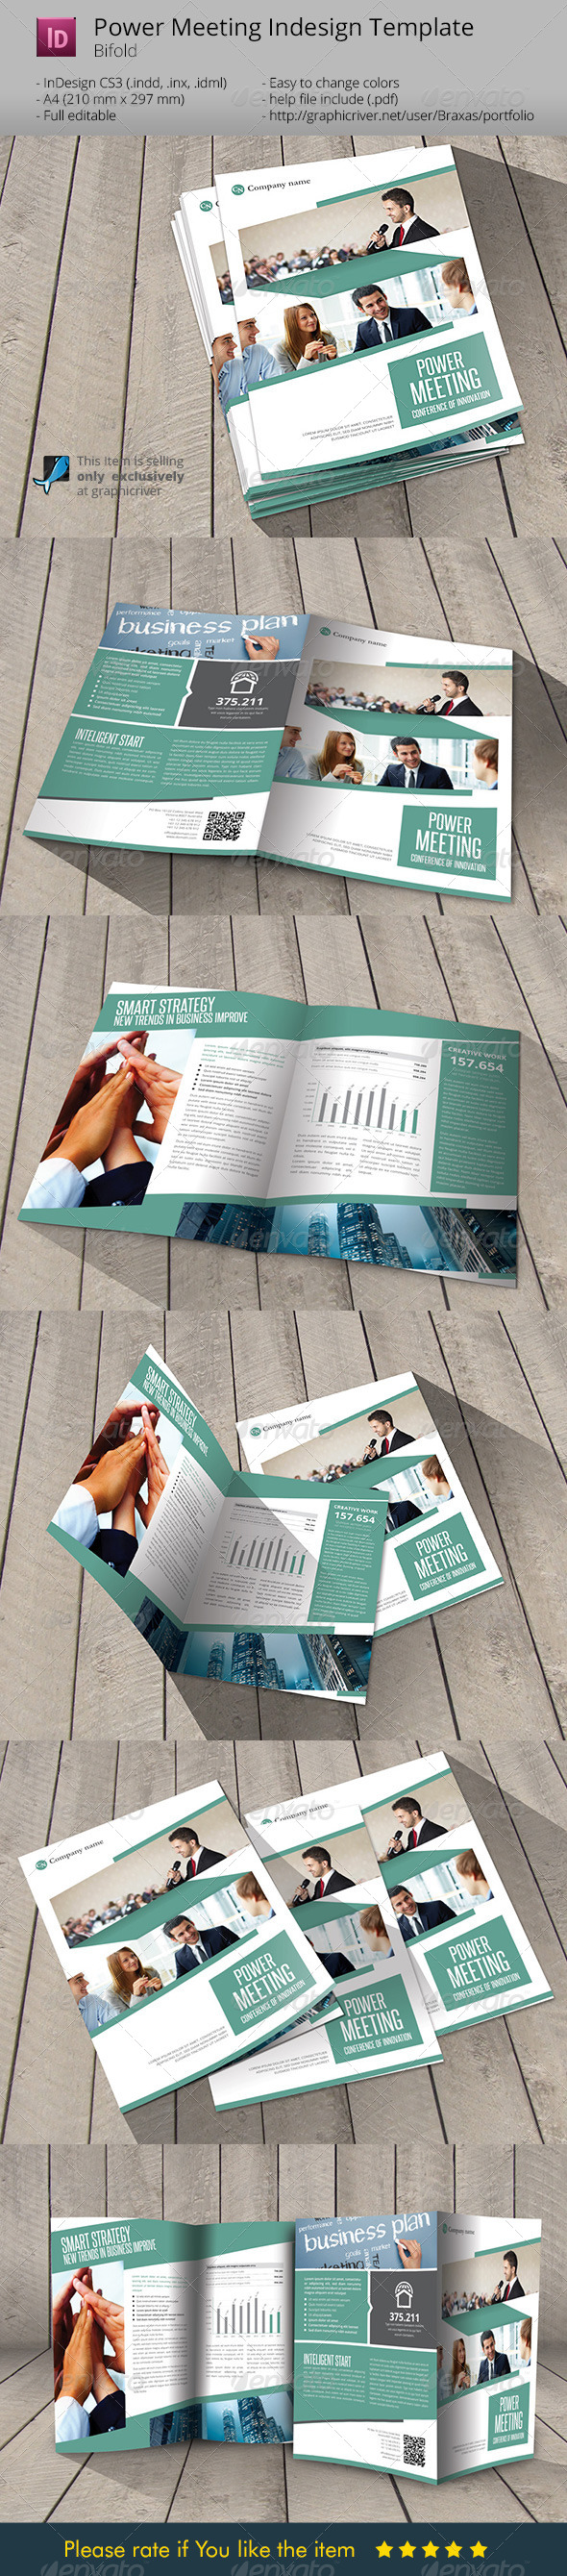 GraphicRiver Power Meeting Indesign Template Brochure 6235183